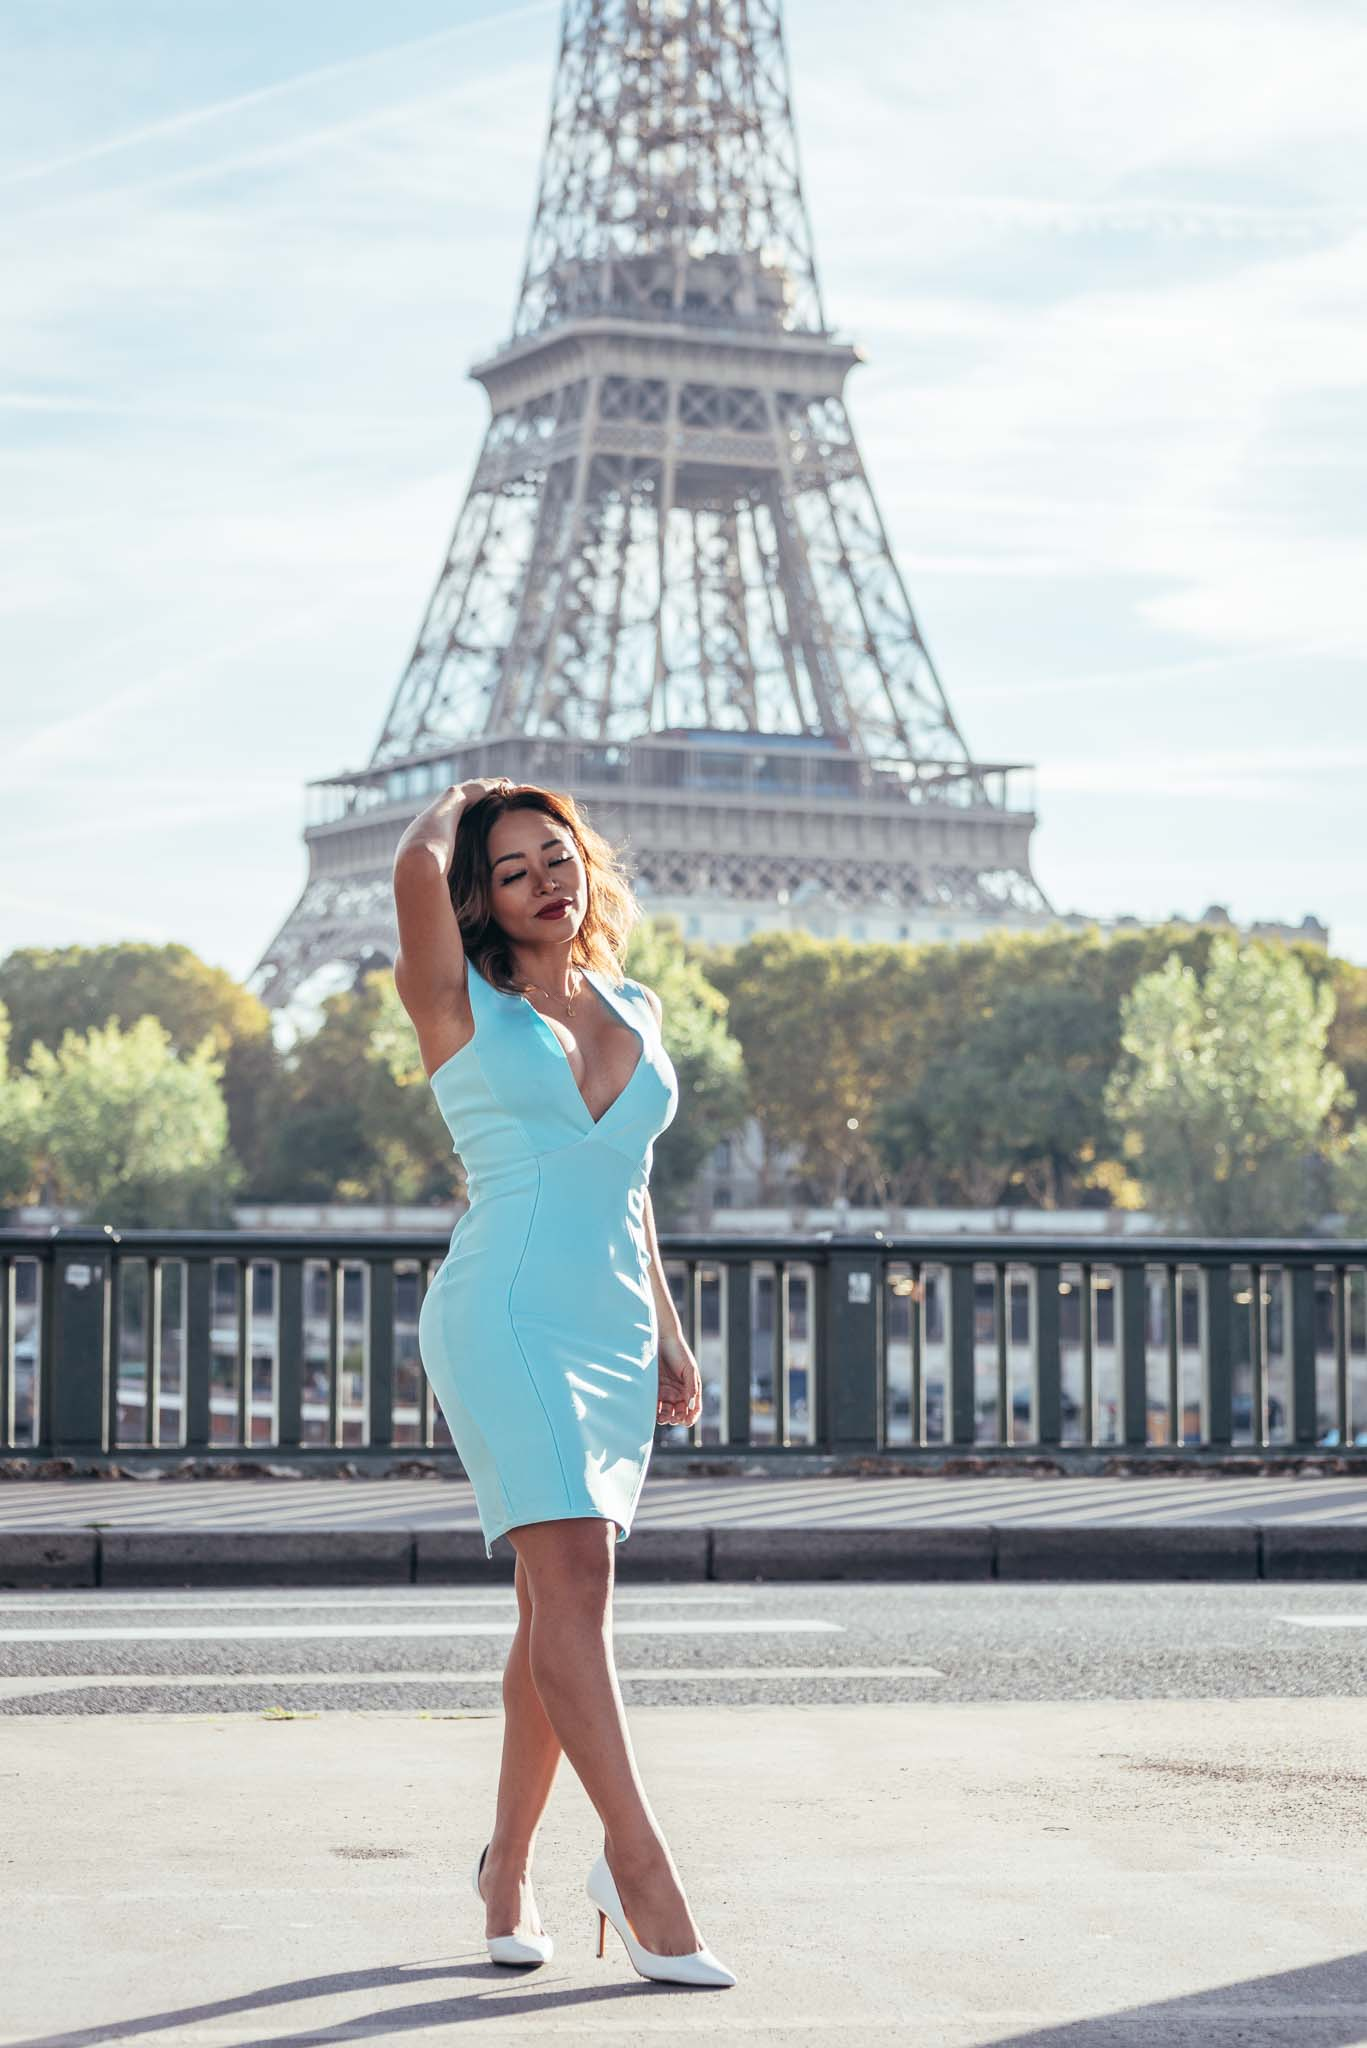 Portrait of instagram influencer in a blue dress in front of the Eiffel Tower in Paris